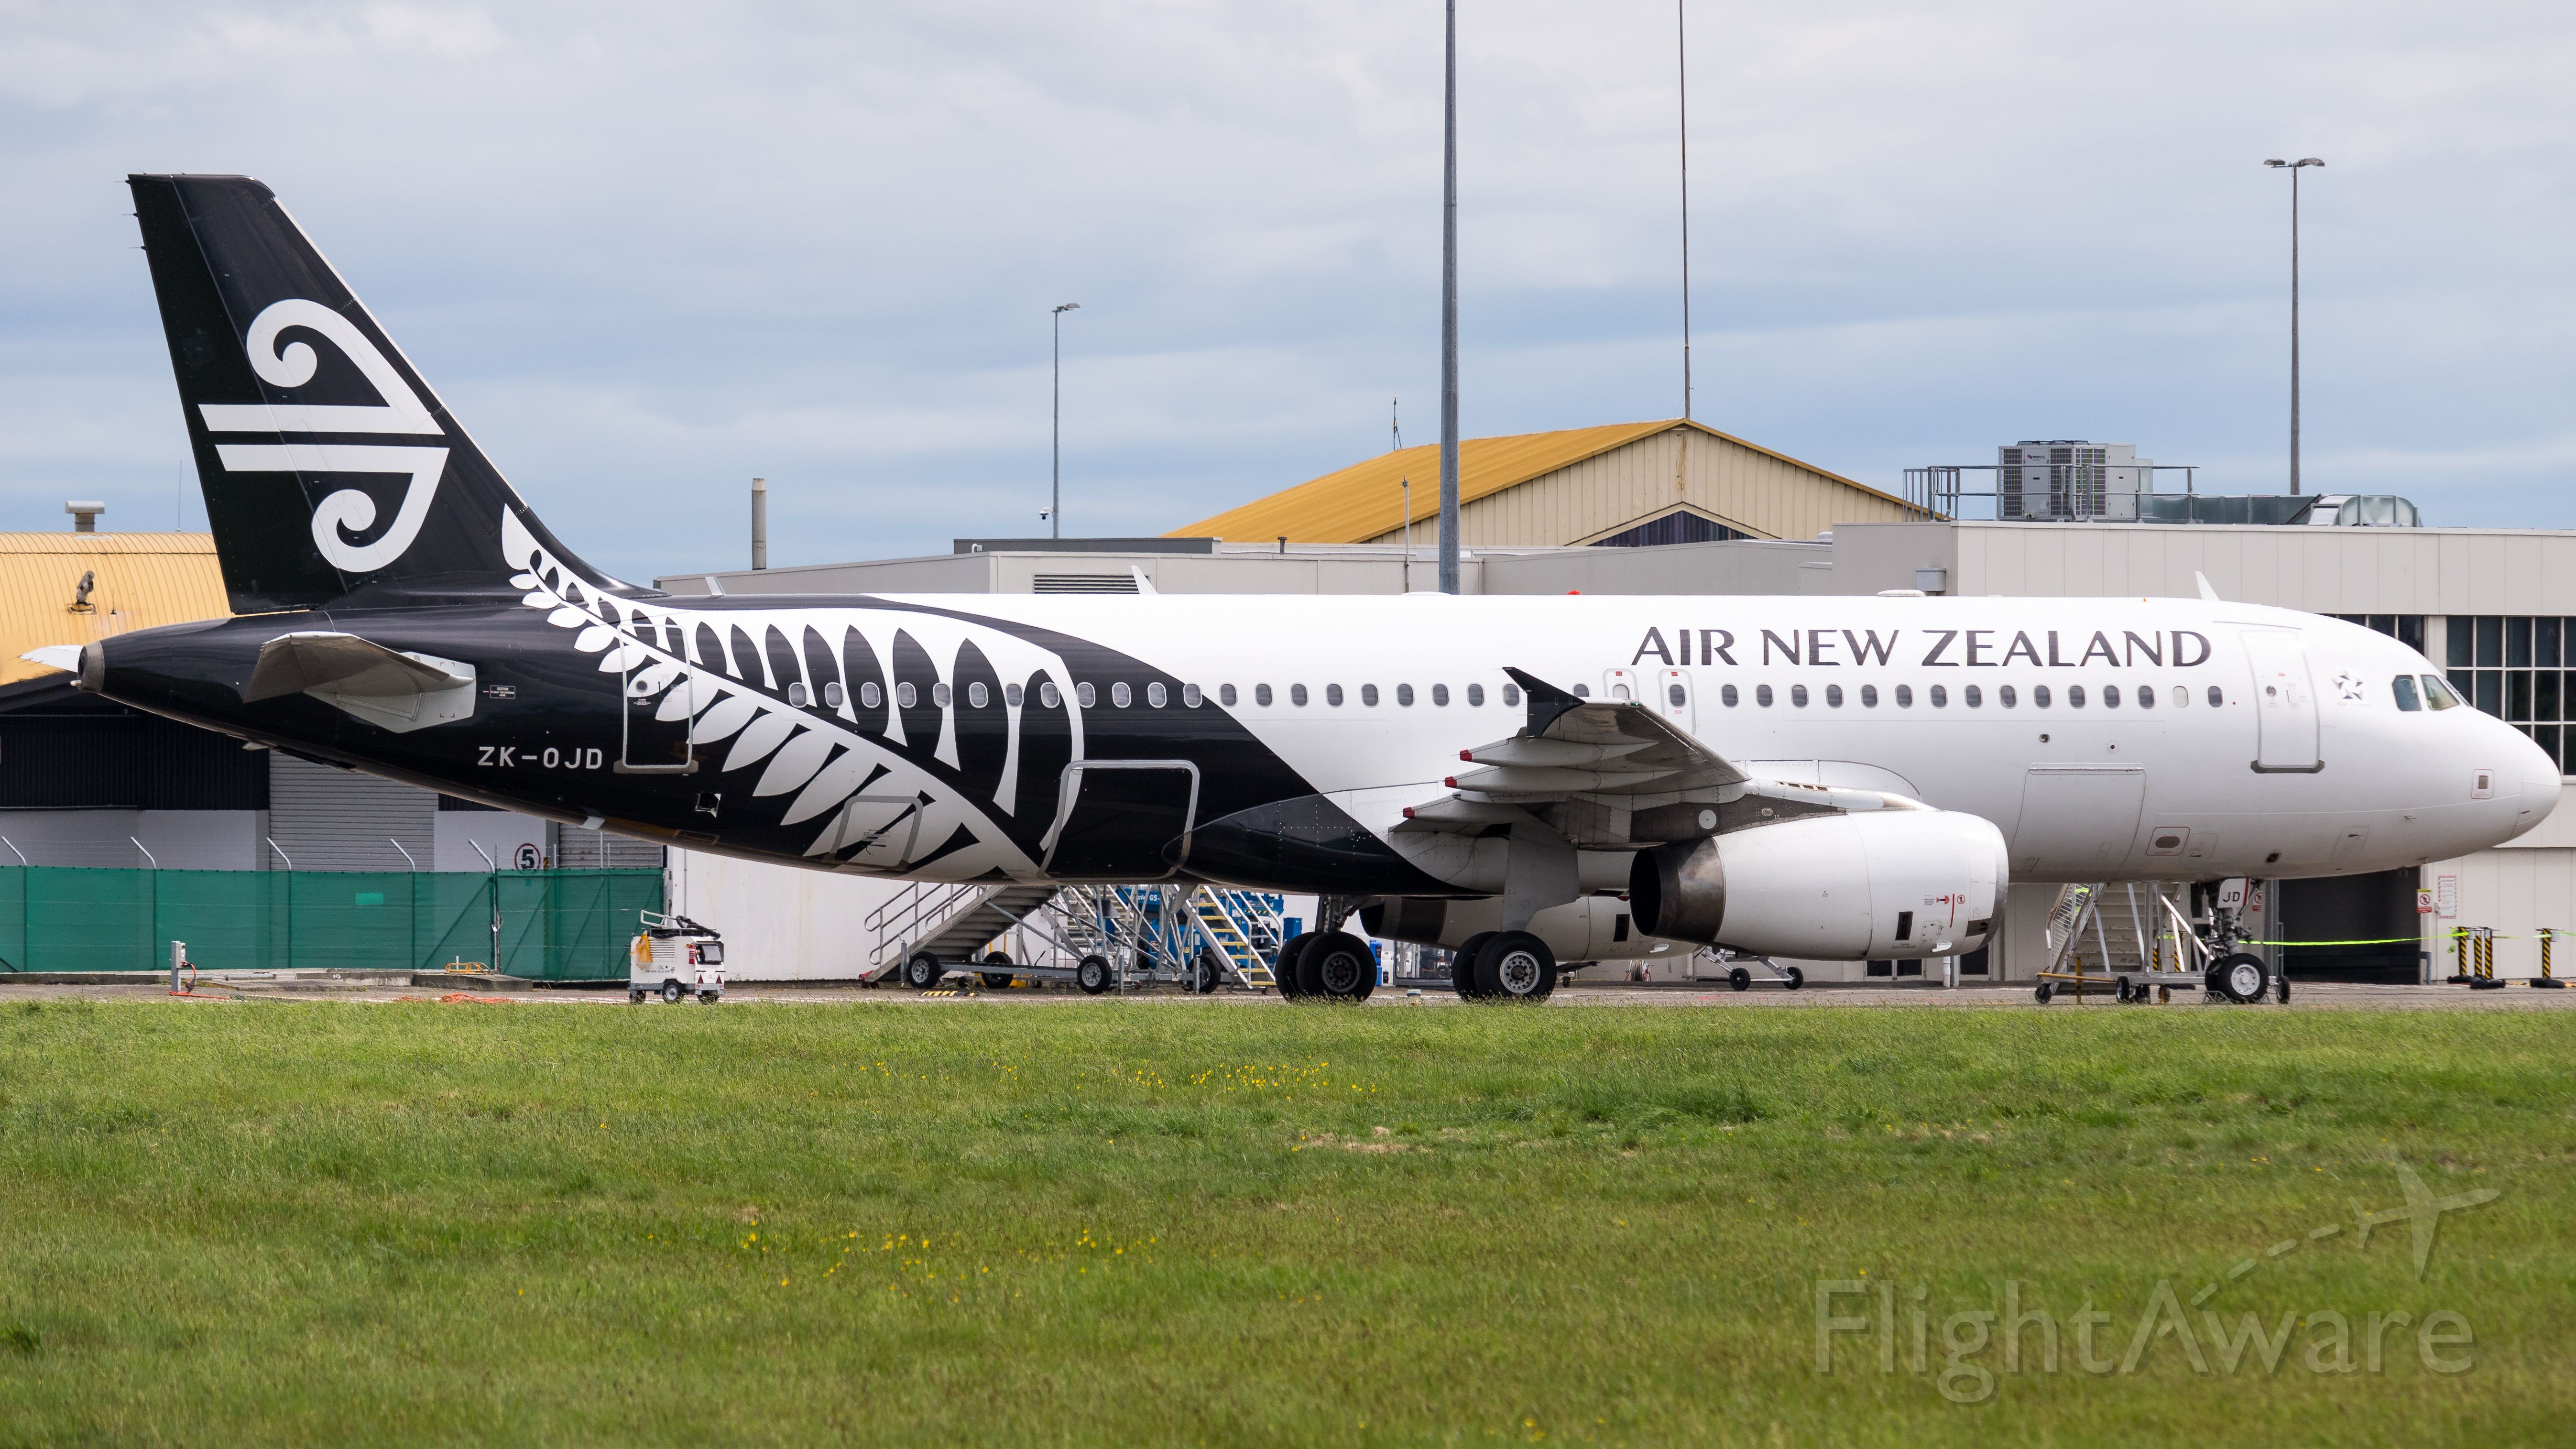 Airbus A320 (ZK-OJD) - ZK-OJD on the ground at Palmerston North after diverting from Wellington. A little bit of a rare sight to see an A320 at Palmerston North.